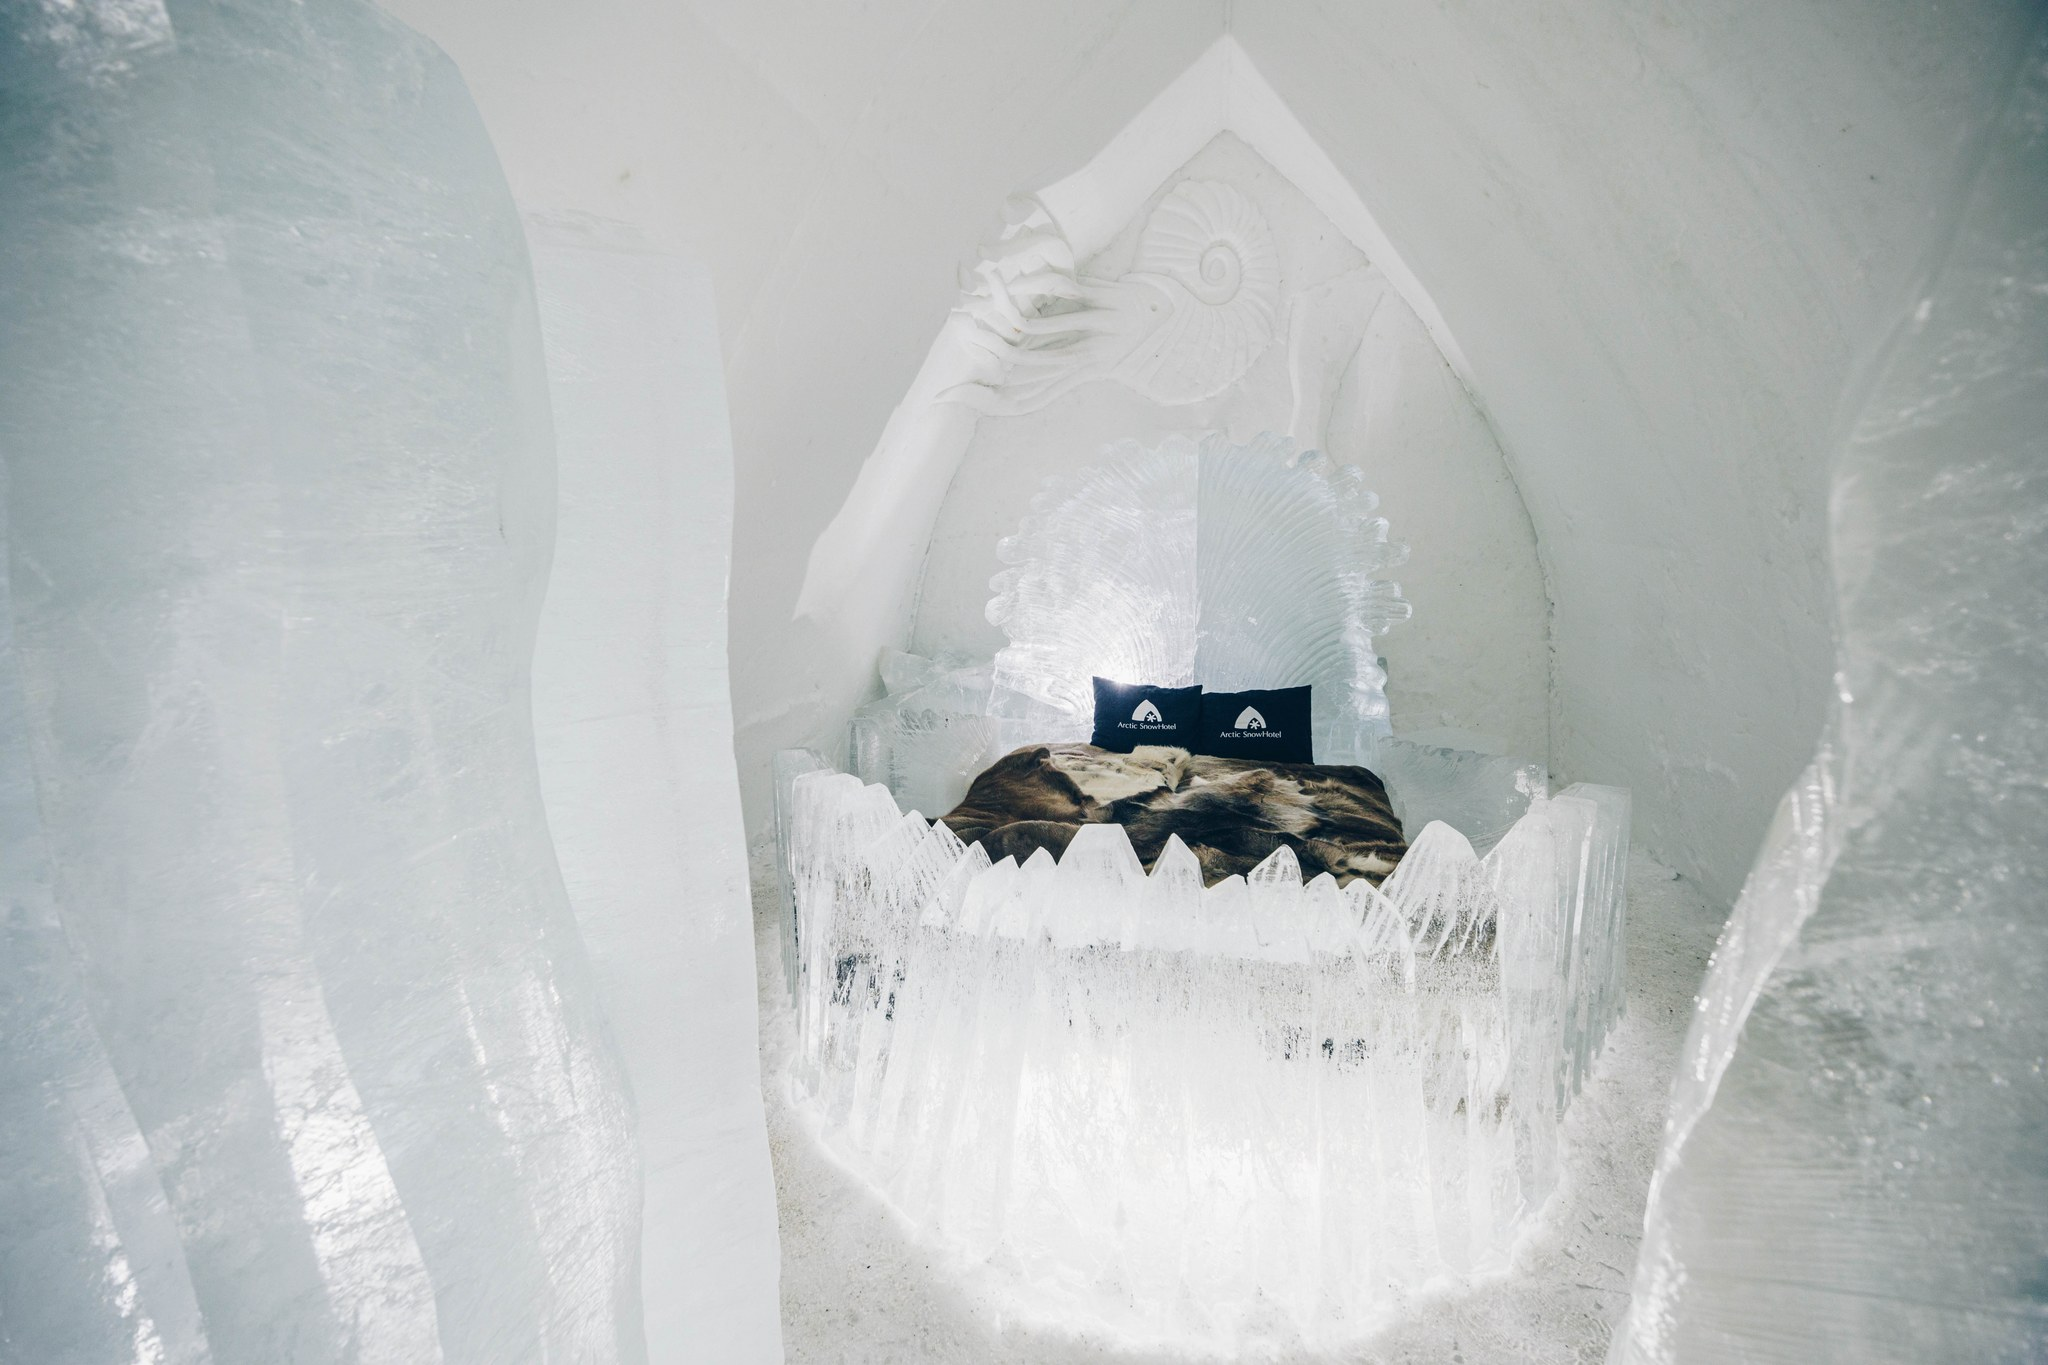 Arctic SnowHotel Shell made of ice